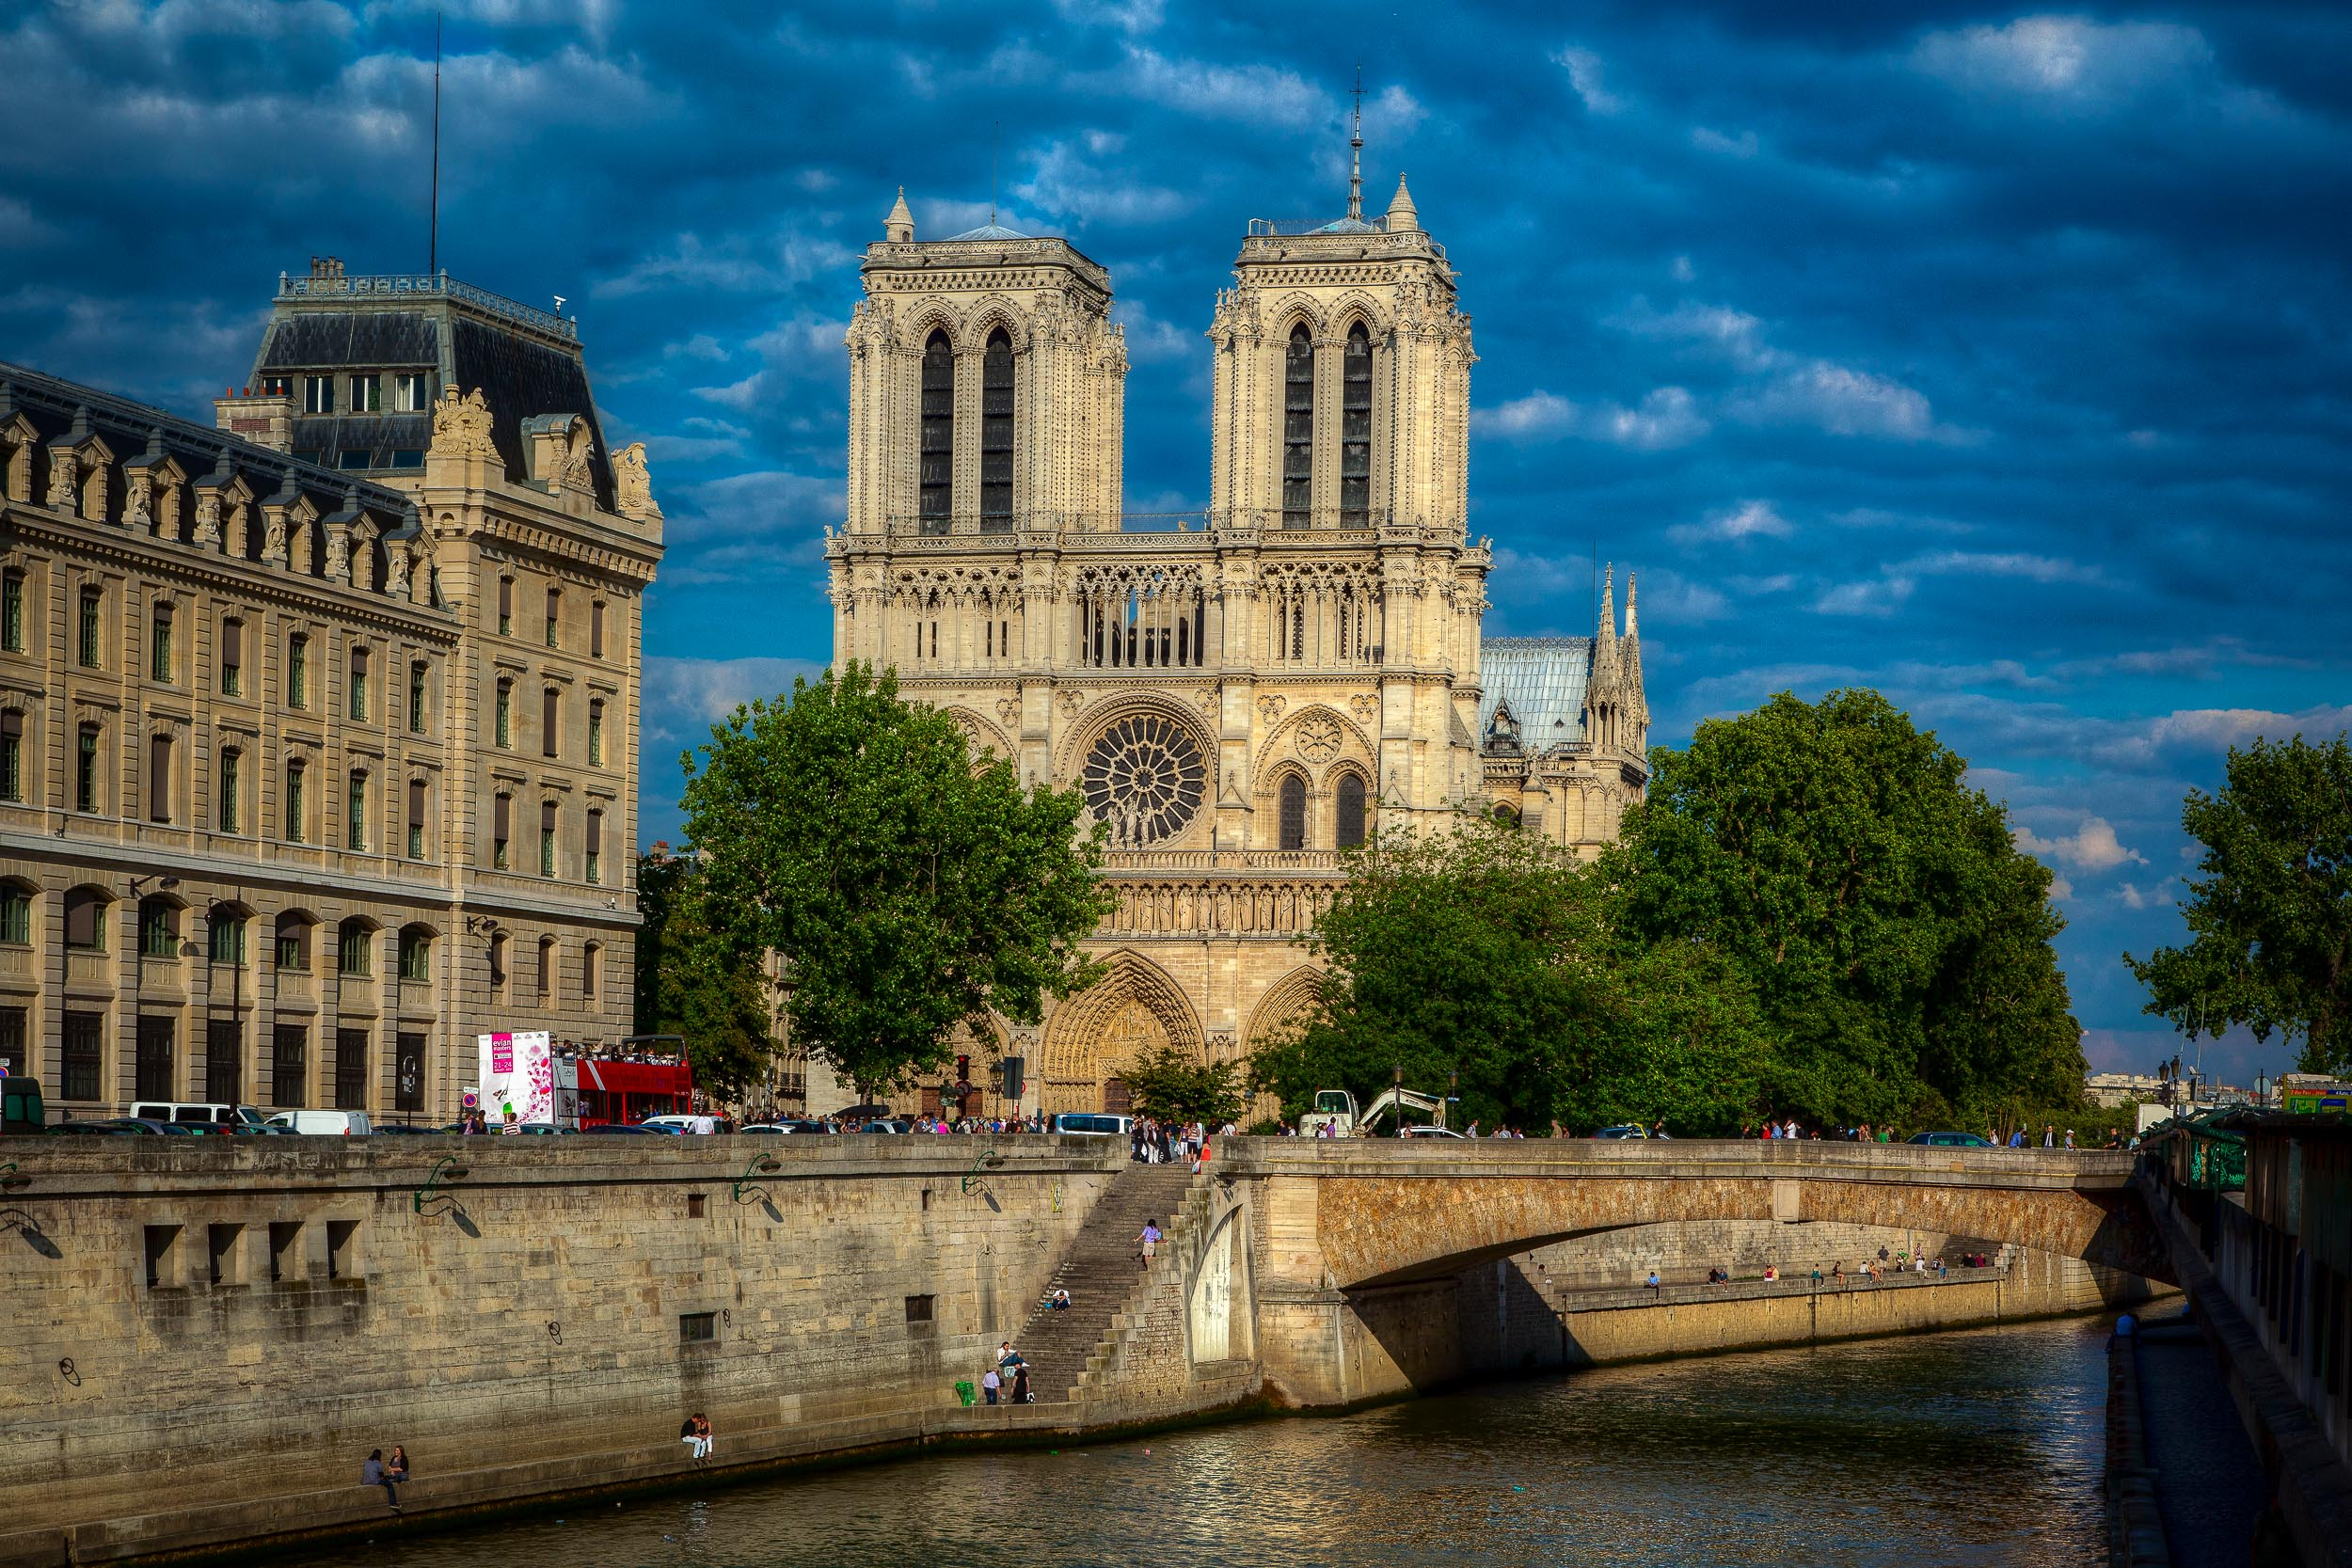 A sunny day view of    Notre Dame Cathedral    and the    River Seine    in    Paris, France   .